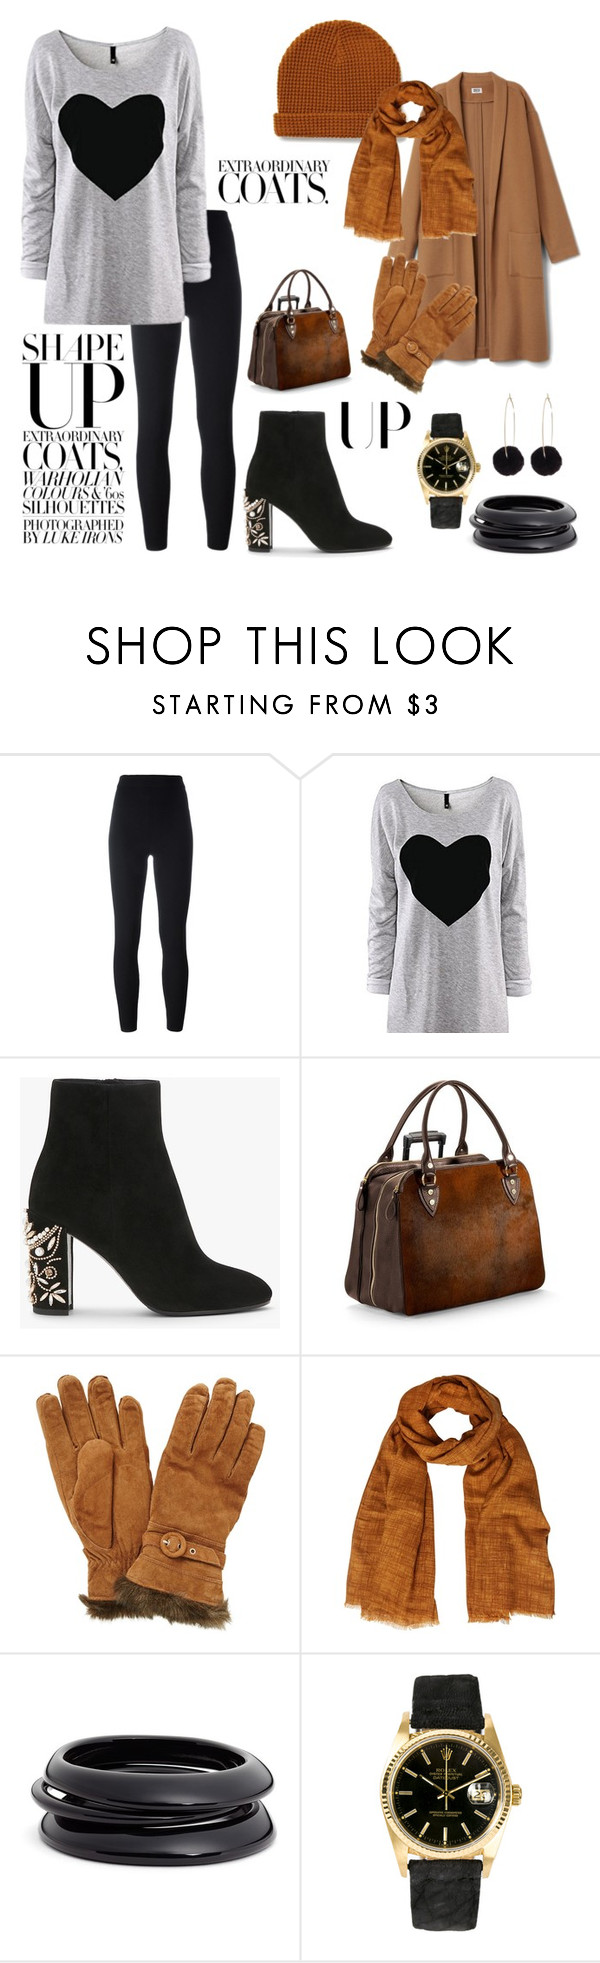 """""""Untitled #832"""" by annsofisweden ❤ liked on Polyvore featuring adidas Originals, Aspinal of London, John Lewis, White Stuff, ZENZii, Rolex and Humble Chic"""